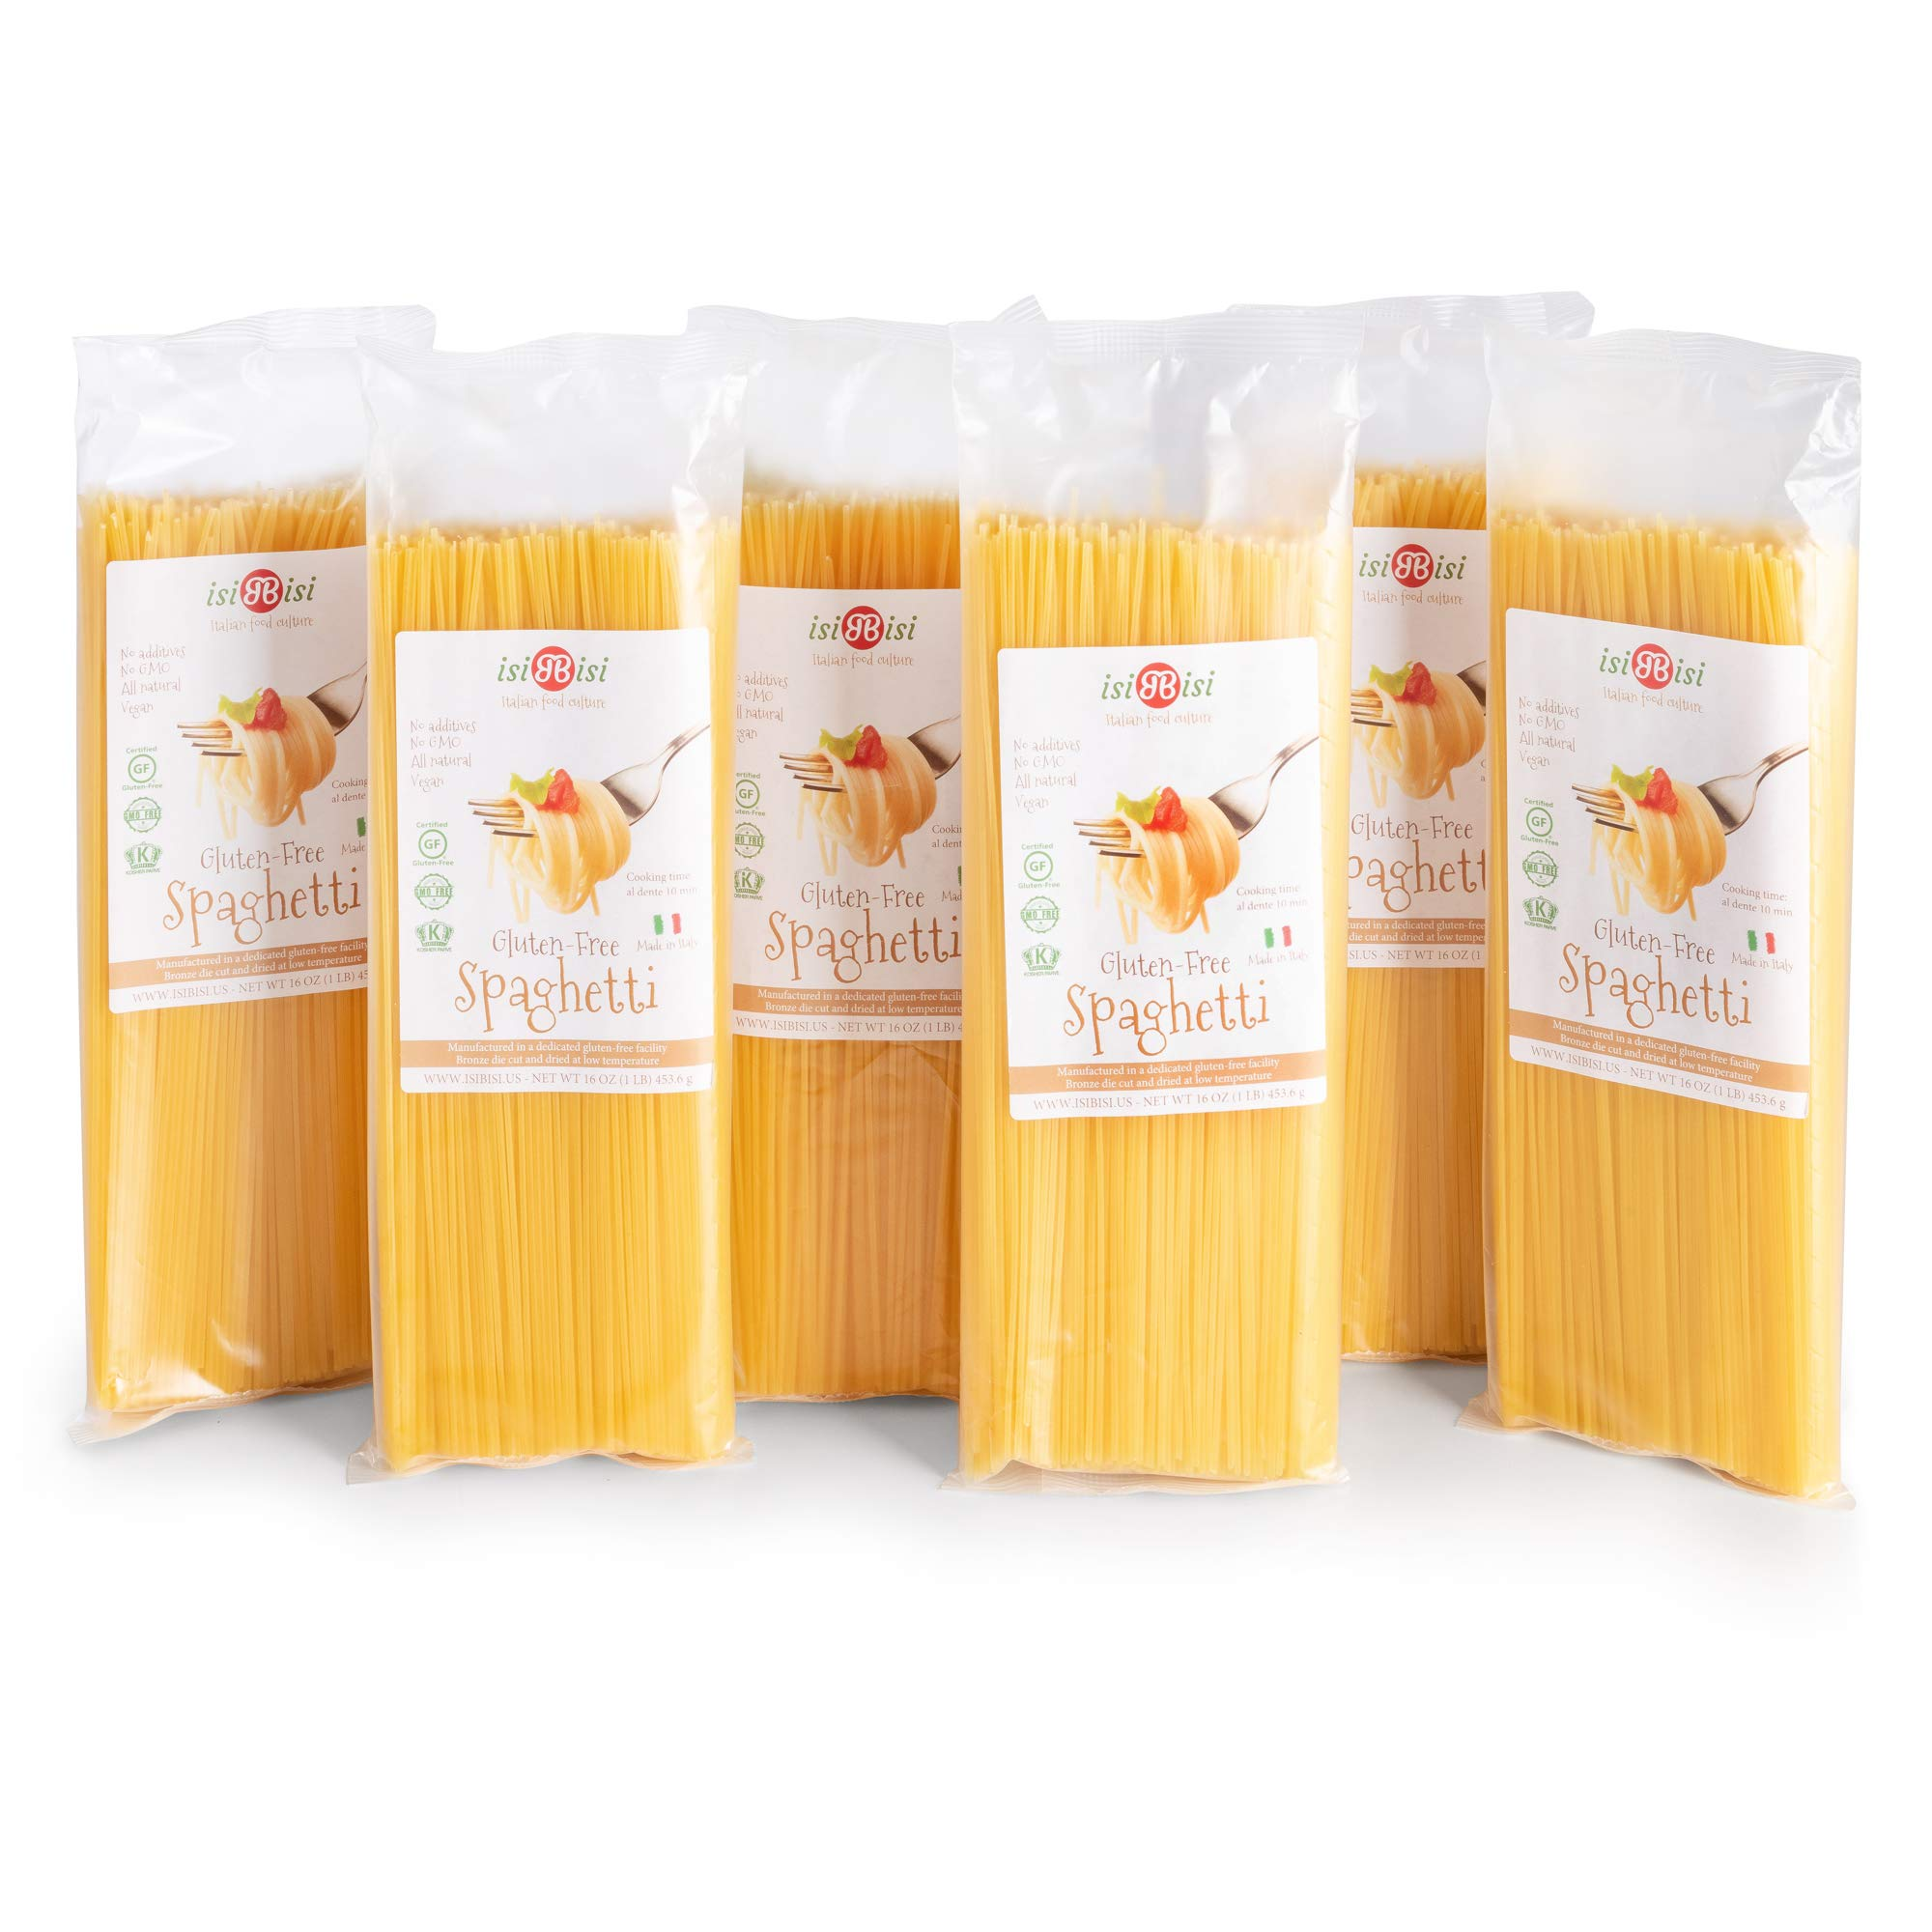 isiBisi Spaghetti Gluten Free Pasta - Rice and Corn Flour - Made in Italy (96 oz - 6 Pack) by isiBisi